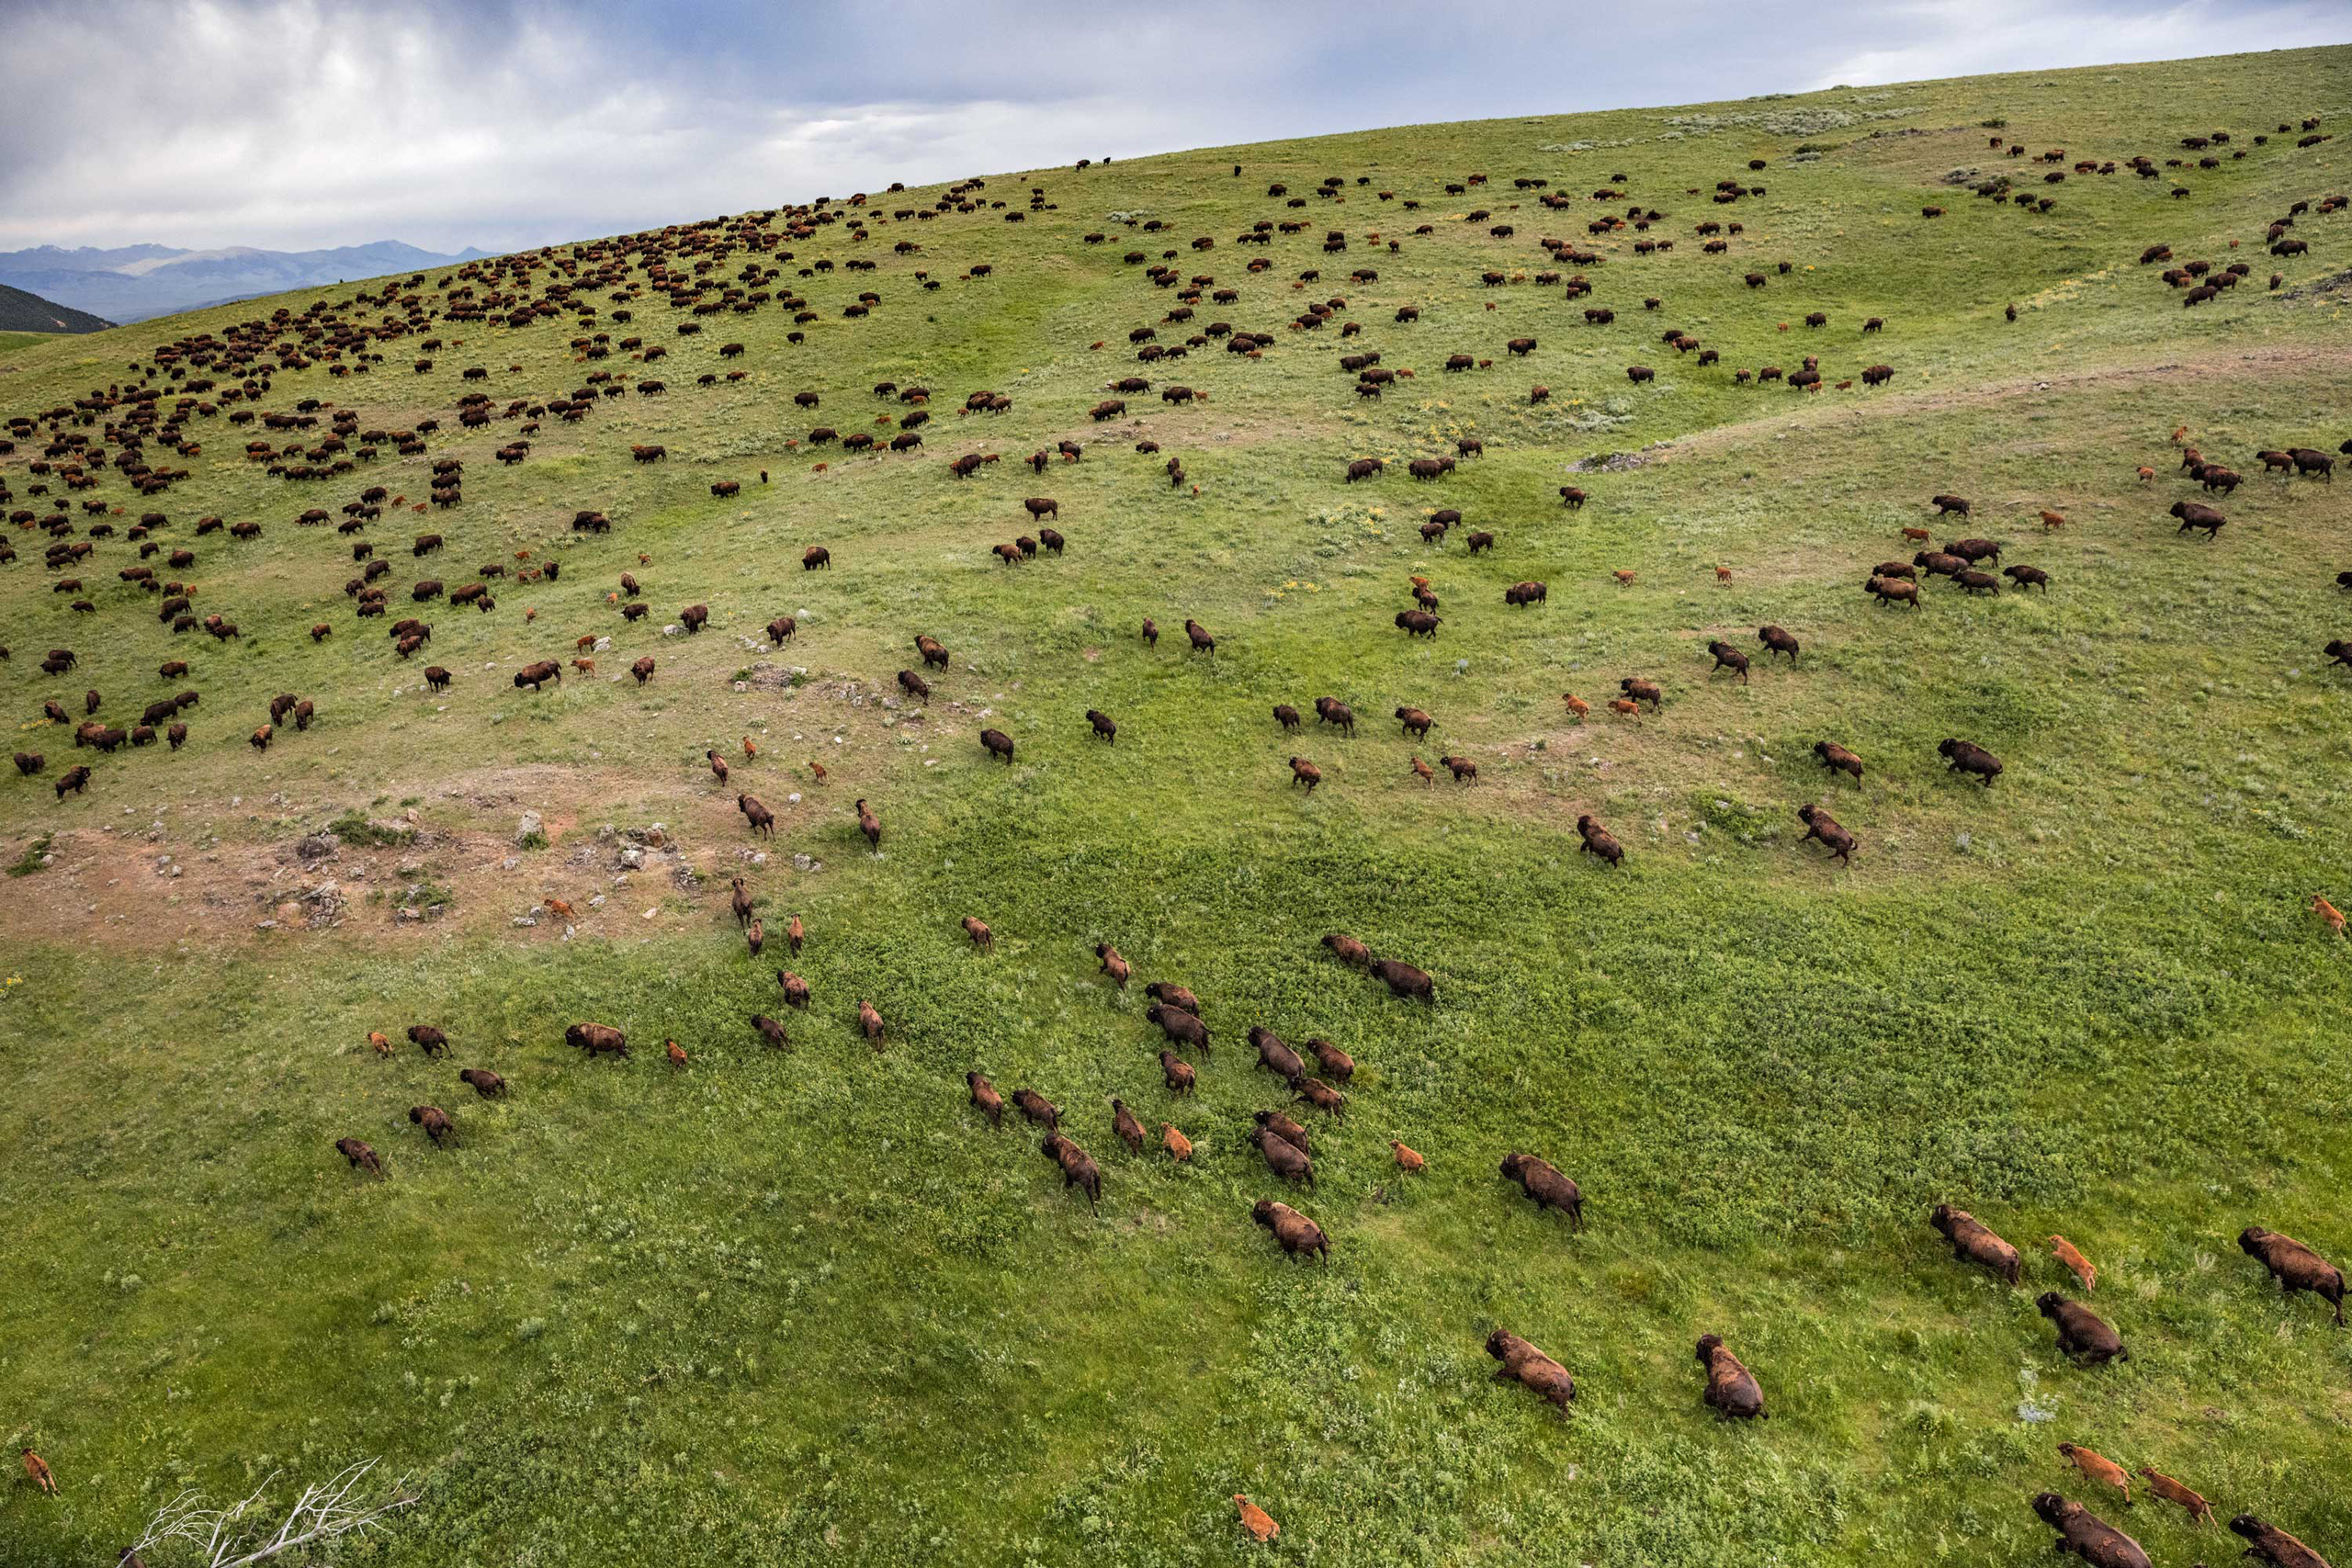 Bison are photographed on Ted Turner's Flying D Ranch outside Bozeman, MT on Tuesday, June 14, 2016.